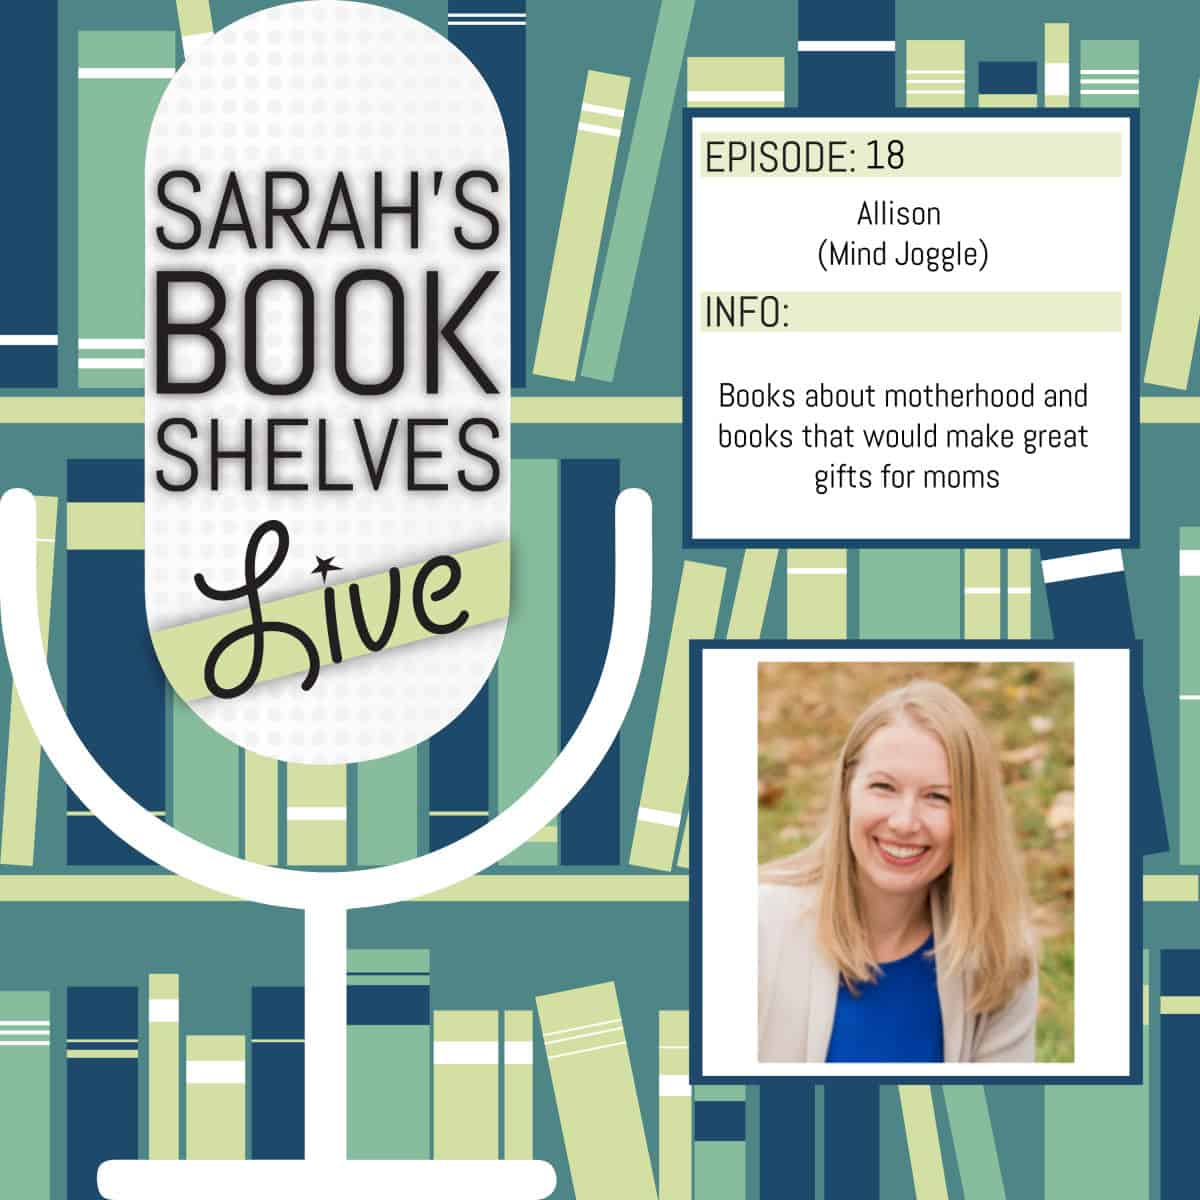 Sarah's Book Shelves Live Podcast Episode - books about motherhood and gifts for moms